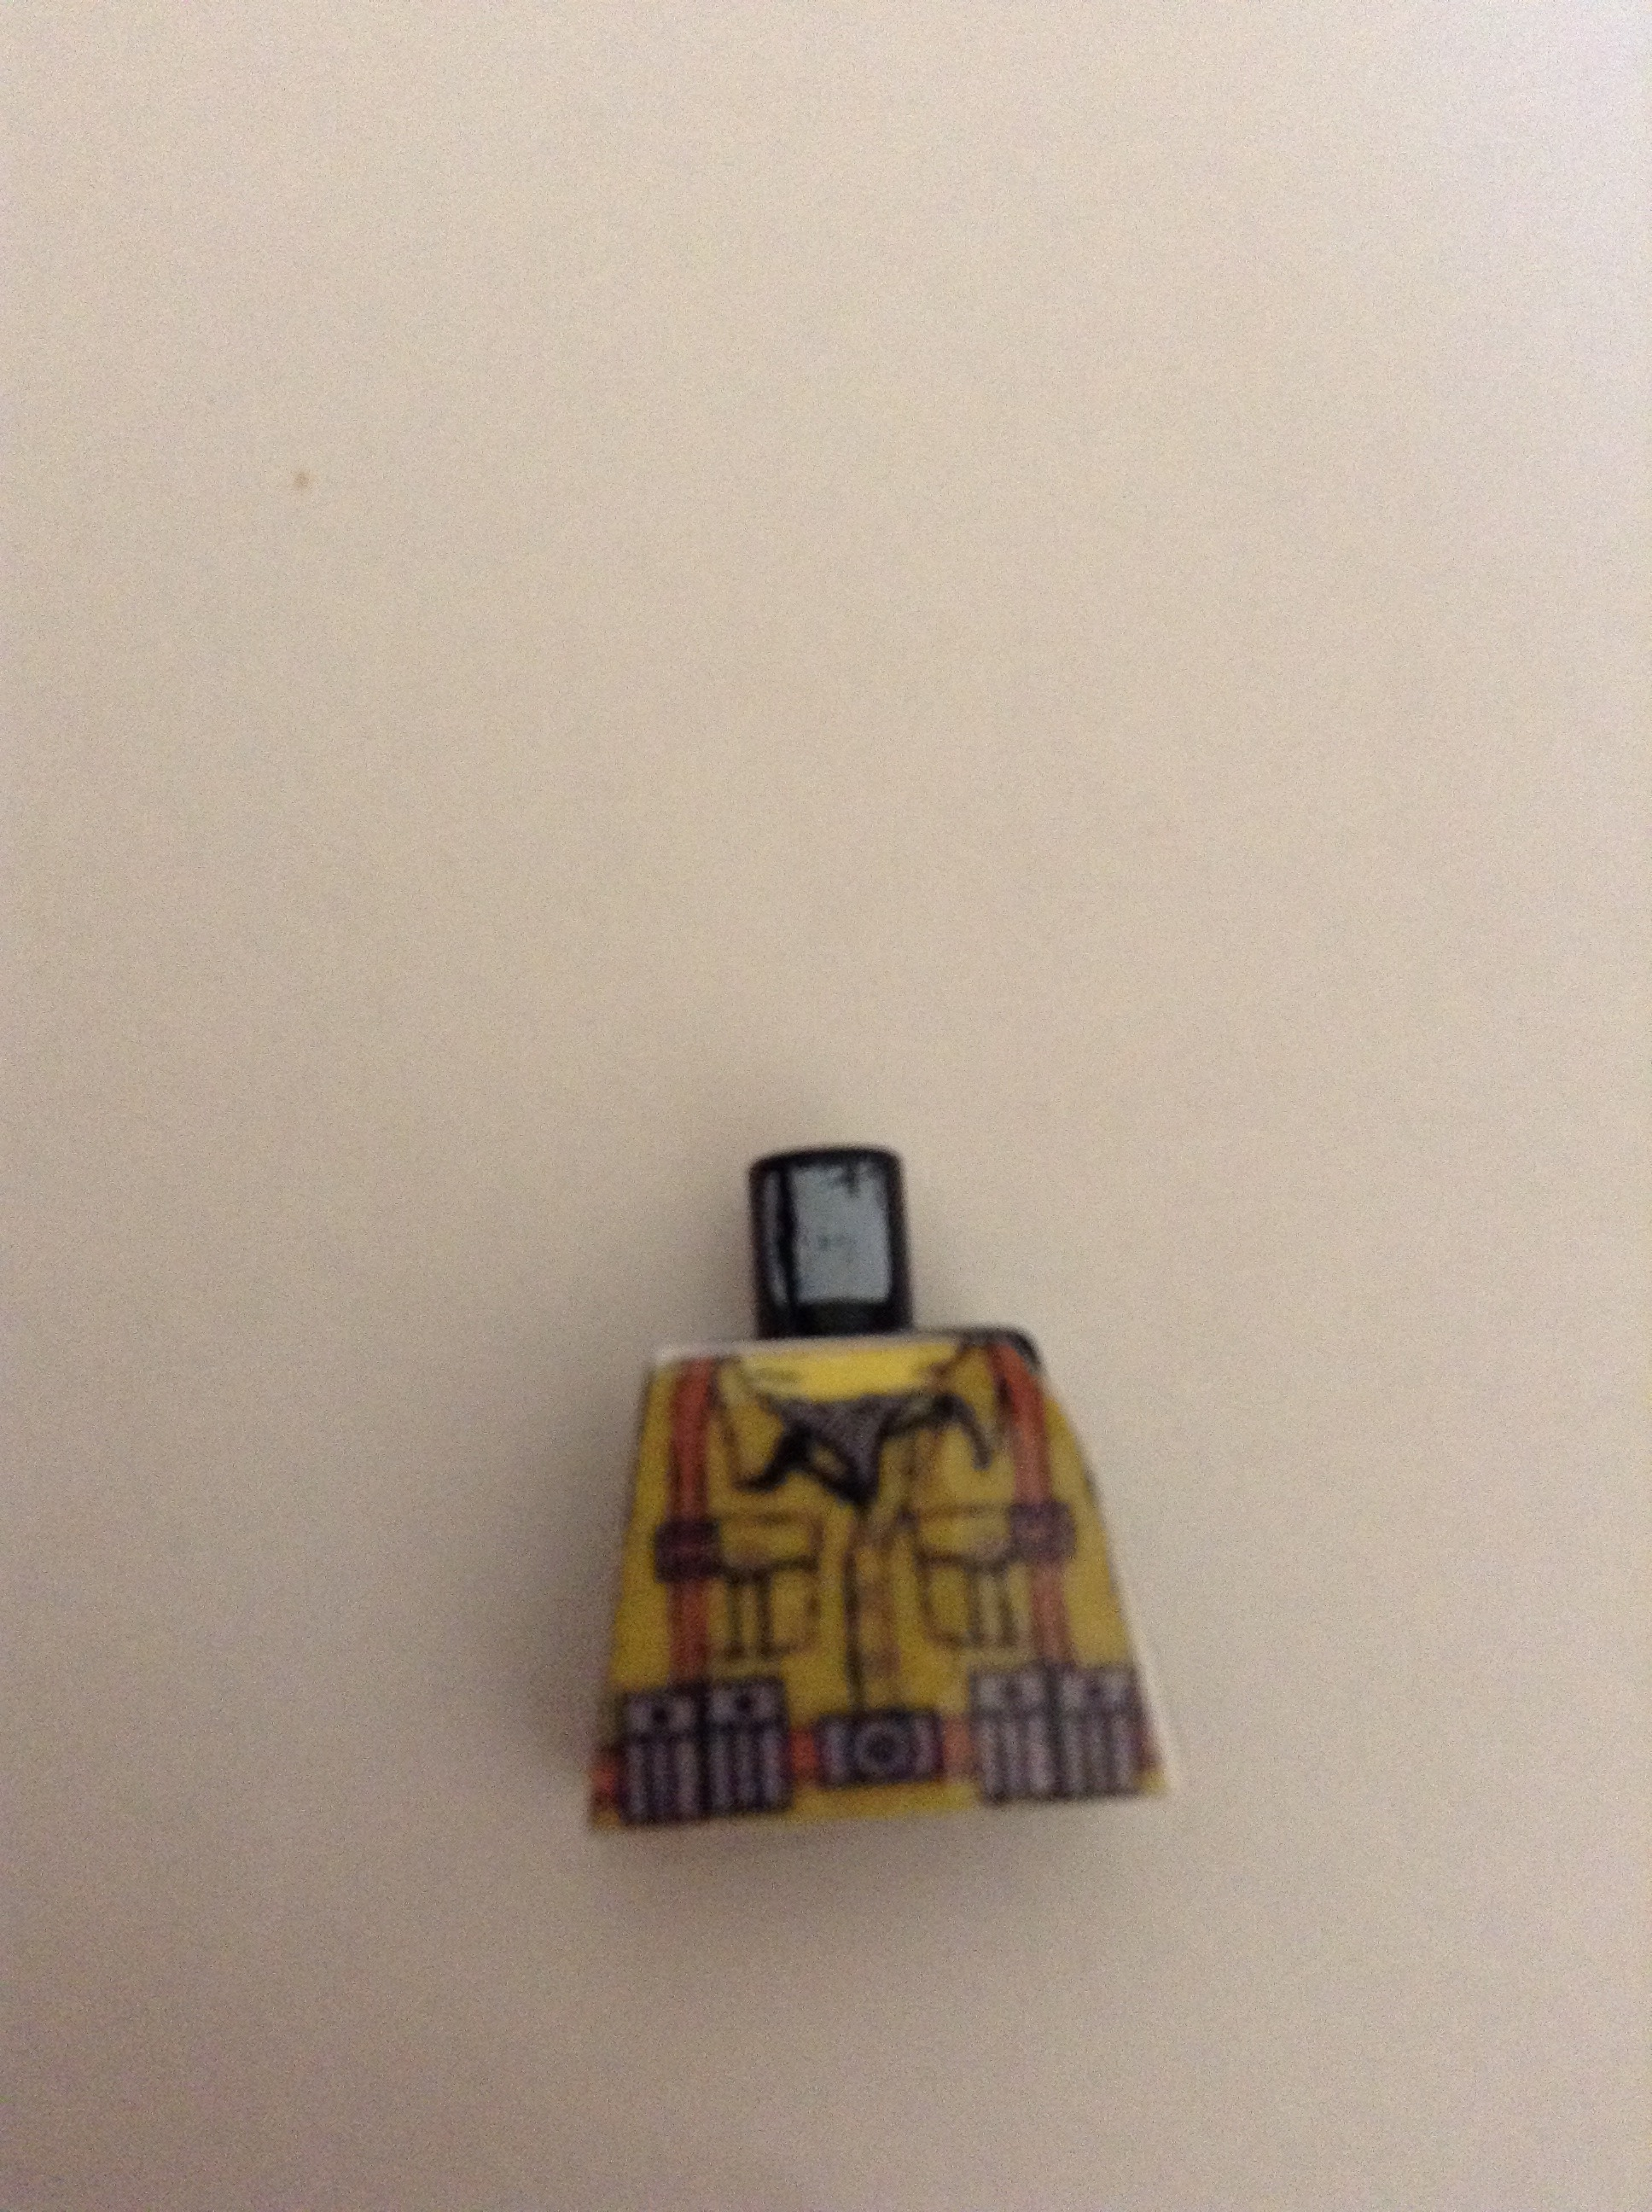 Picture of And There Is Your New Lego Body With an Awesome Decal